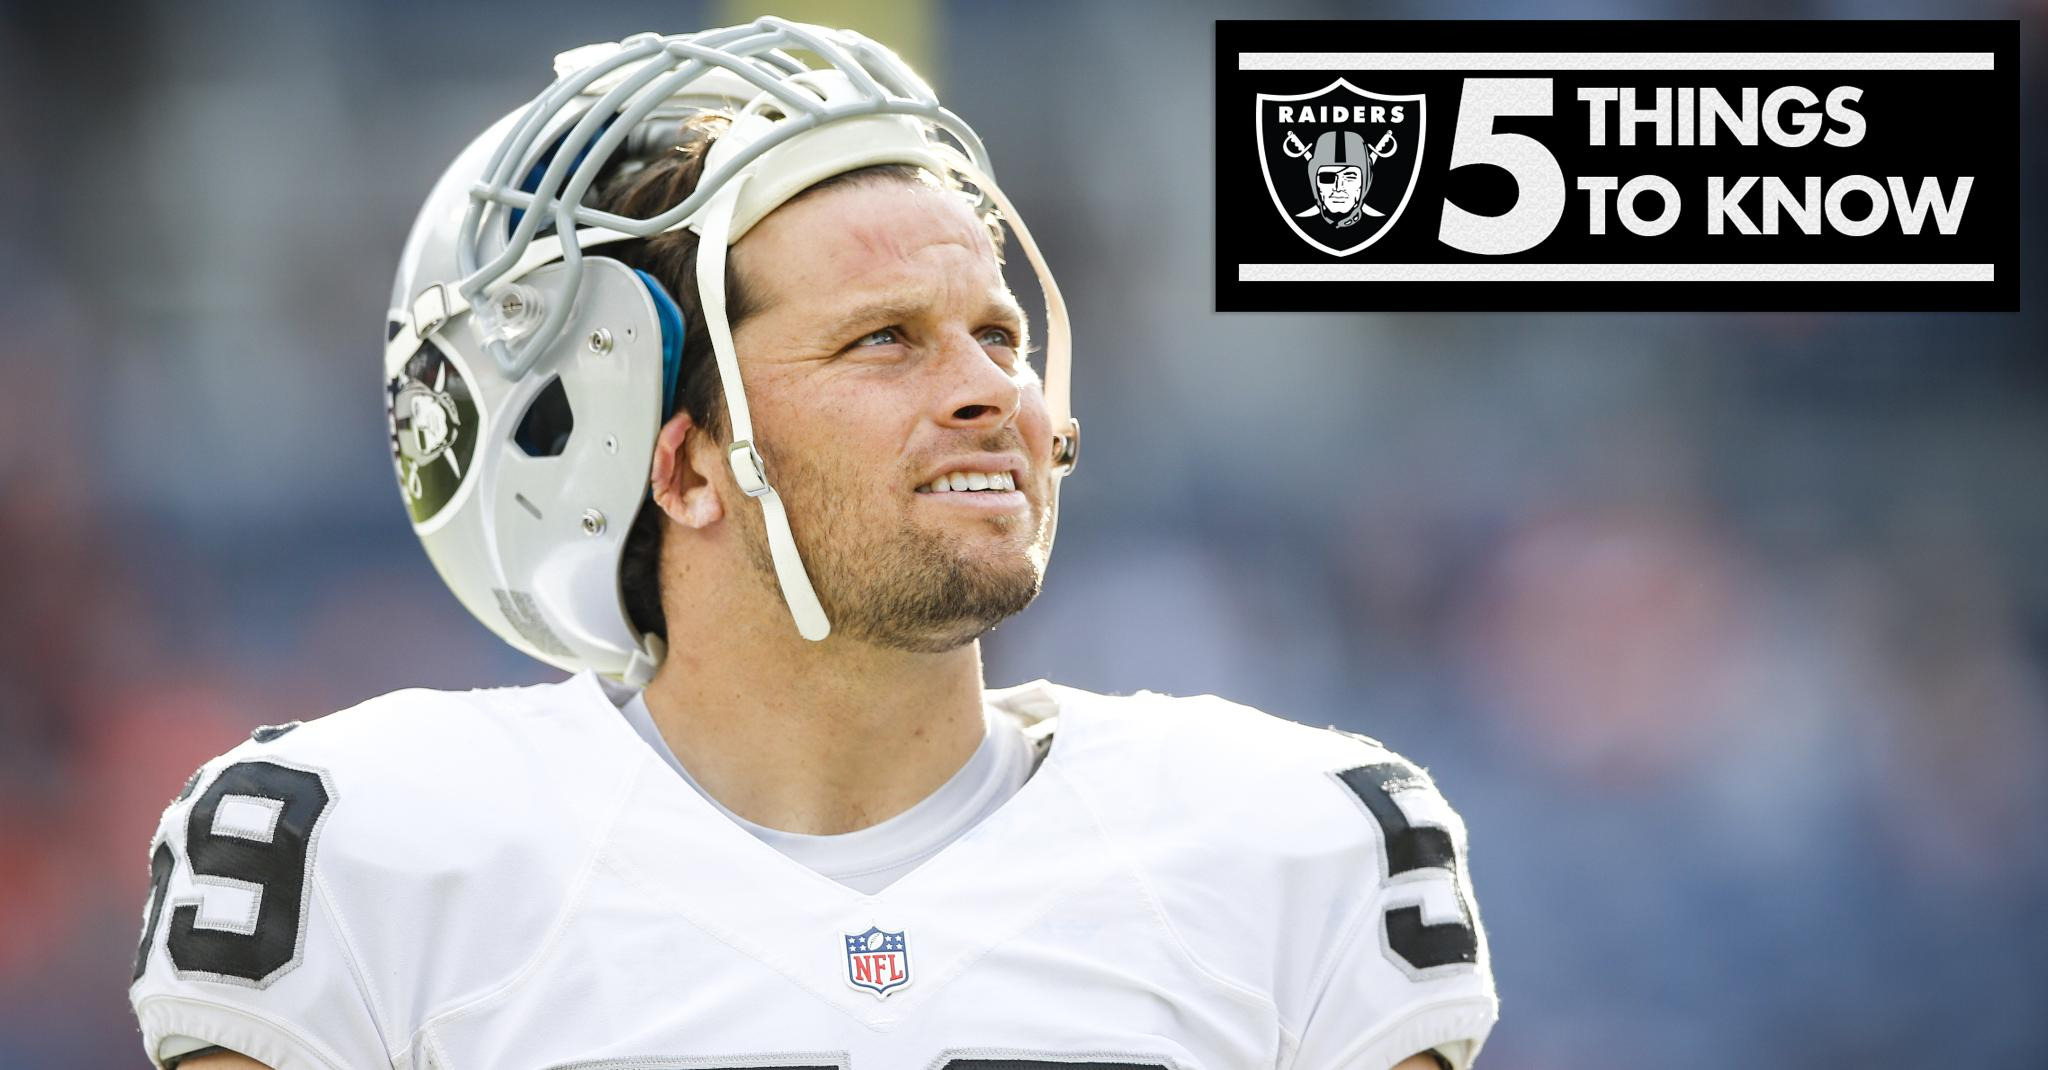 Five Things To Know About Long Snapper Jon Condo